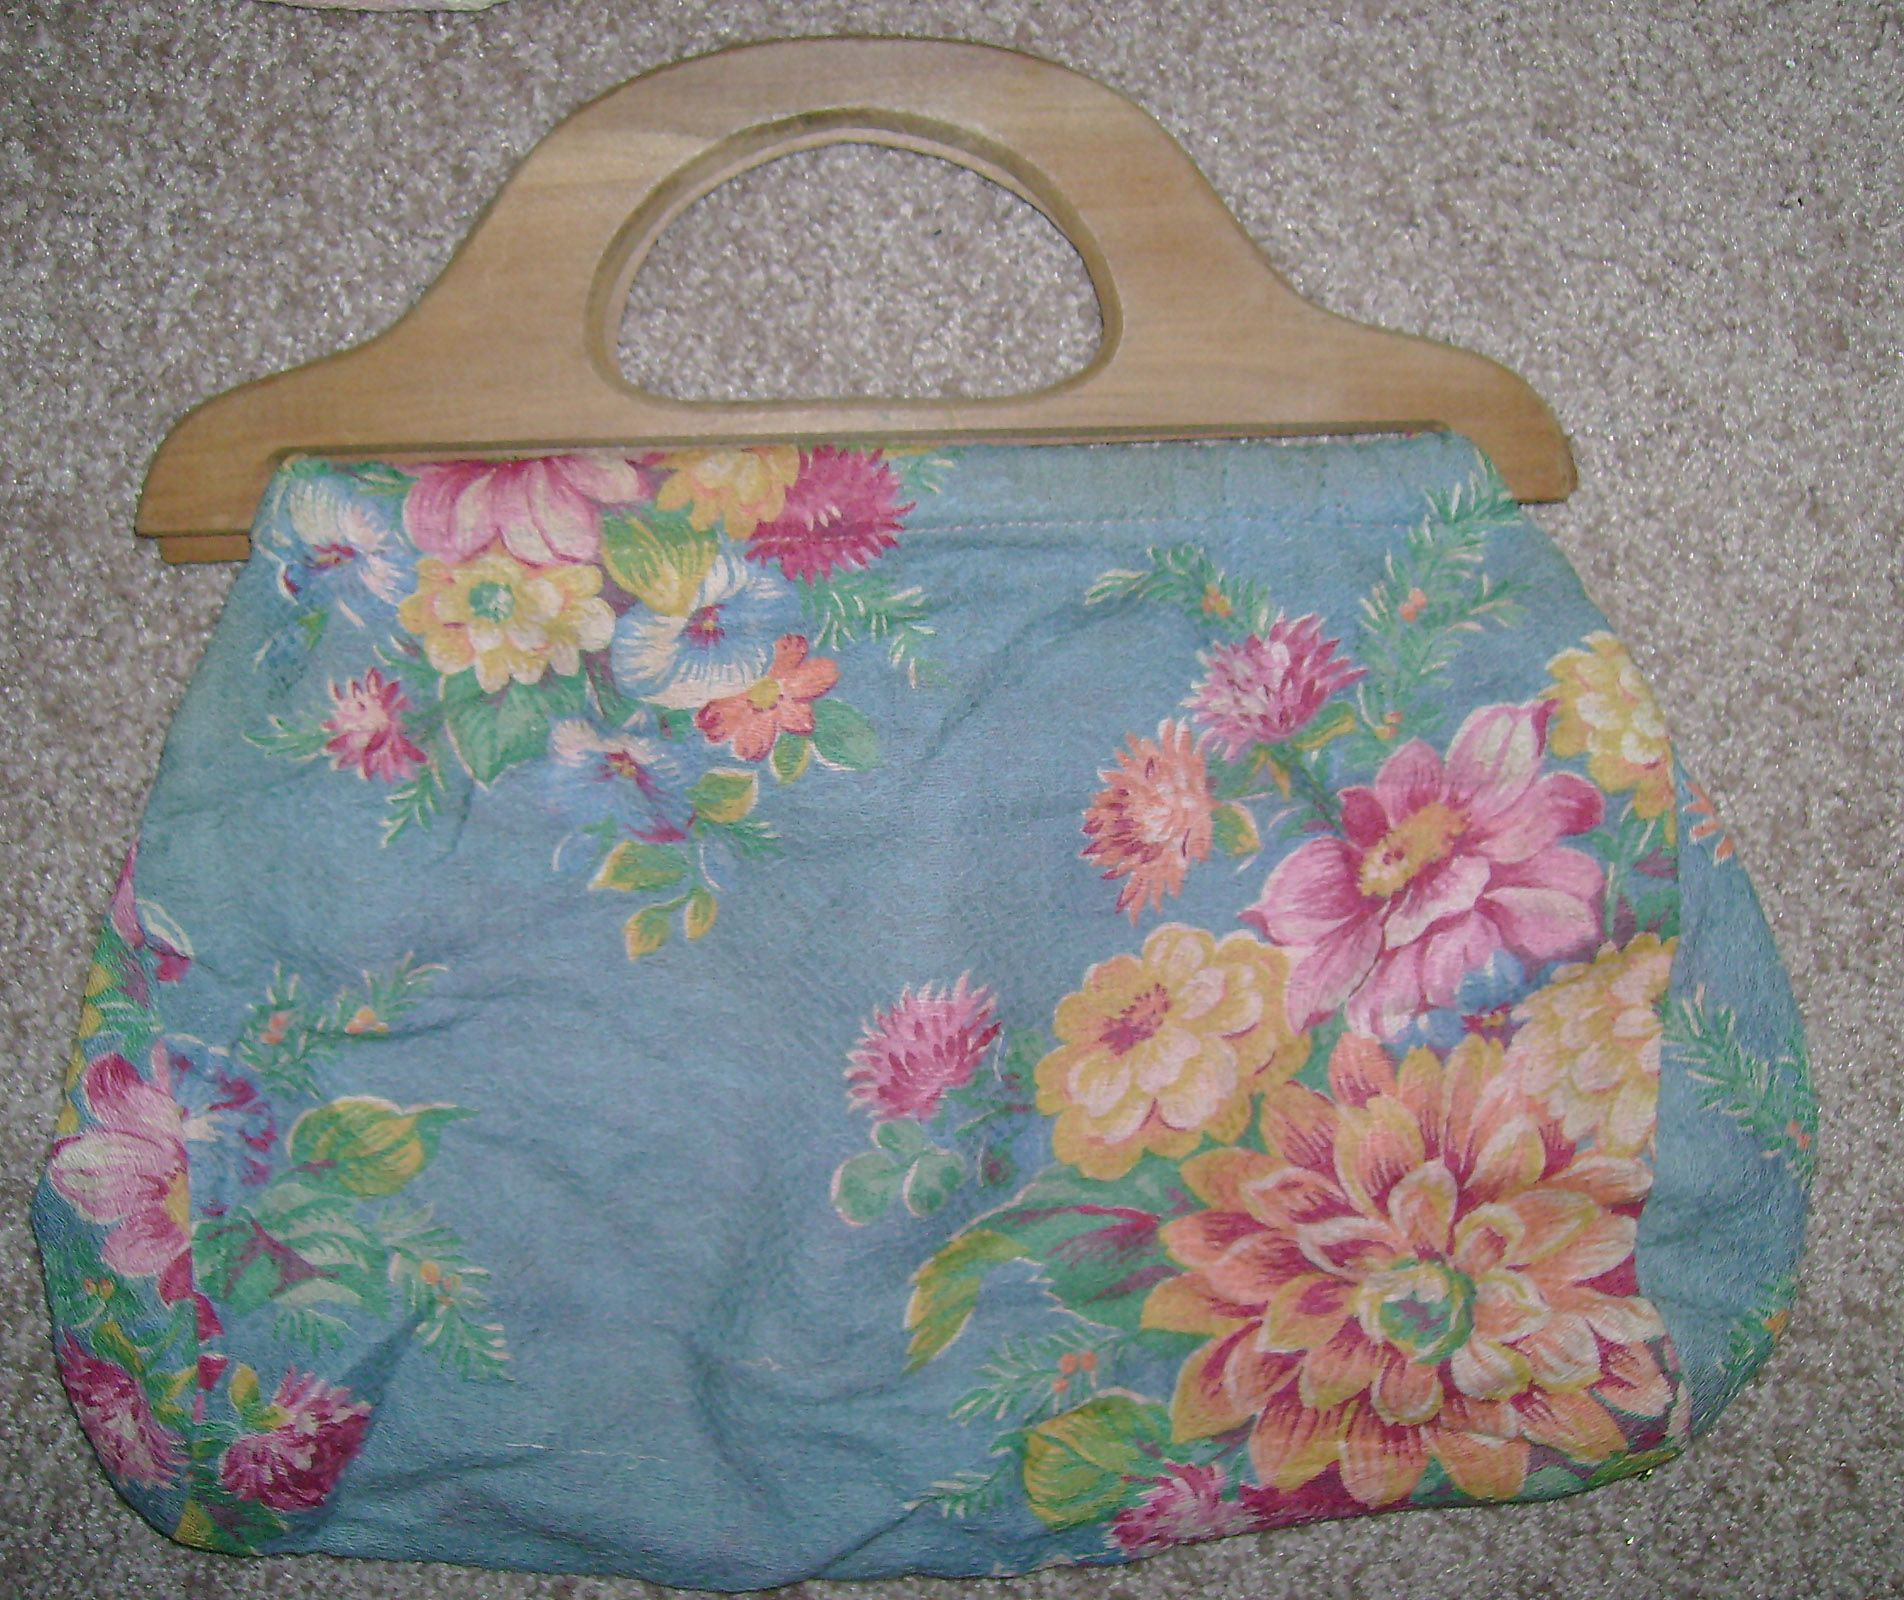 Vintage Knitting Or Sewing Bag From The 1940s 50s With Wooden Handles And Floral Barkcloth Fabric Excellent Condition I V Knitted Bags Barkcloth Vintage Wood